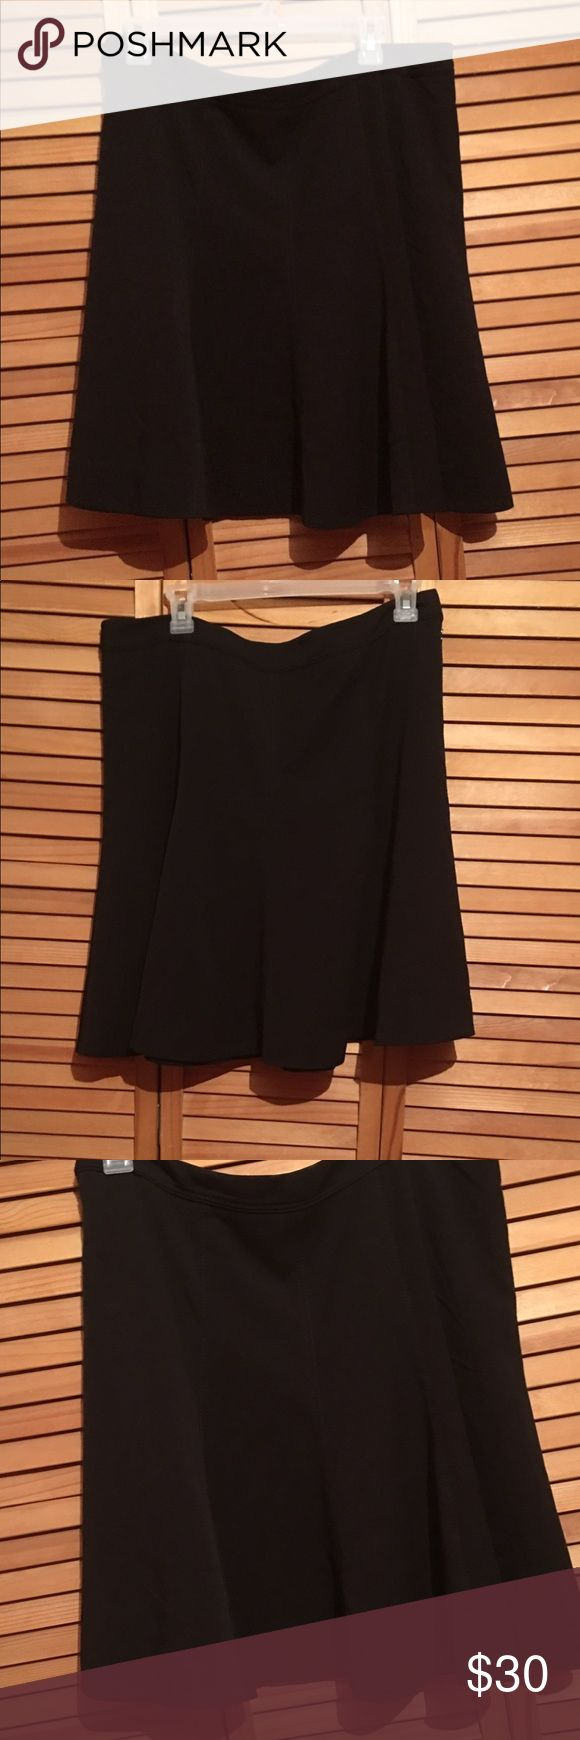 "WHITE HOUSE BLACK MARKET BLACK PEPLUM SKIRT White House Black Market black peplum skirt, side zipper, lined, 63% polyester, 32% rayon, 5% spandex, approx 21"" long, gently worn once, size 12, label is torn but still attached White House Black Market Skirts"